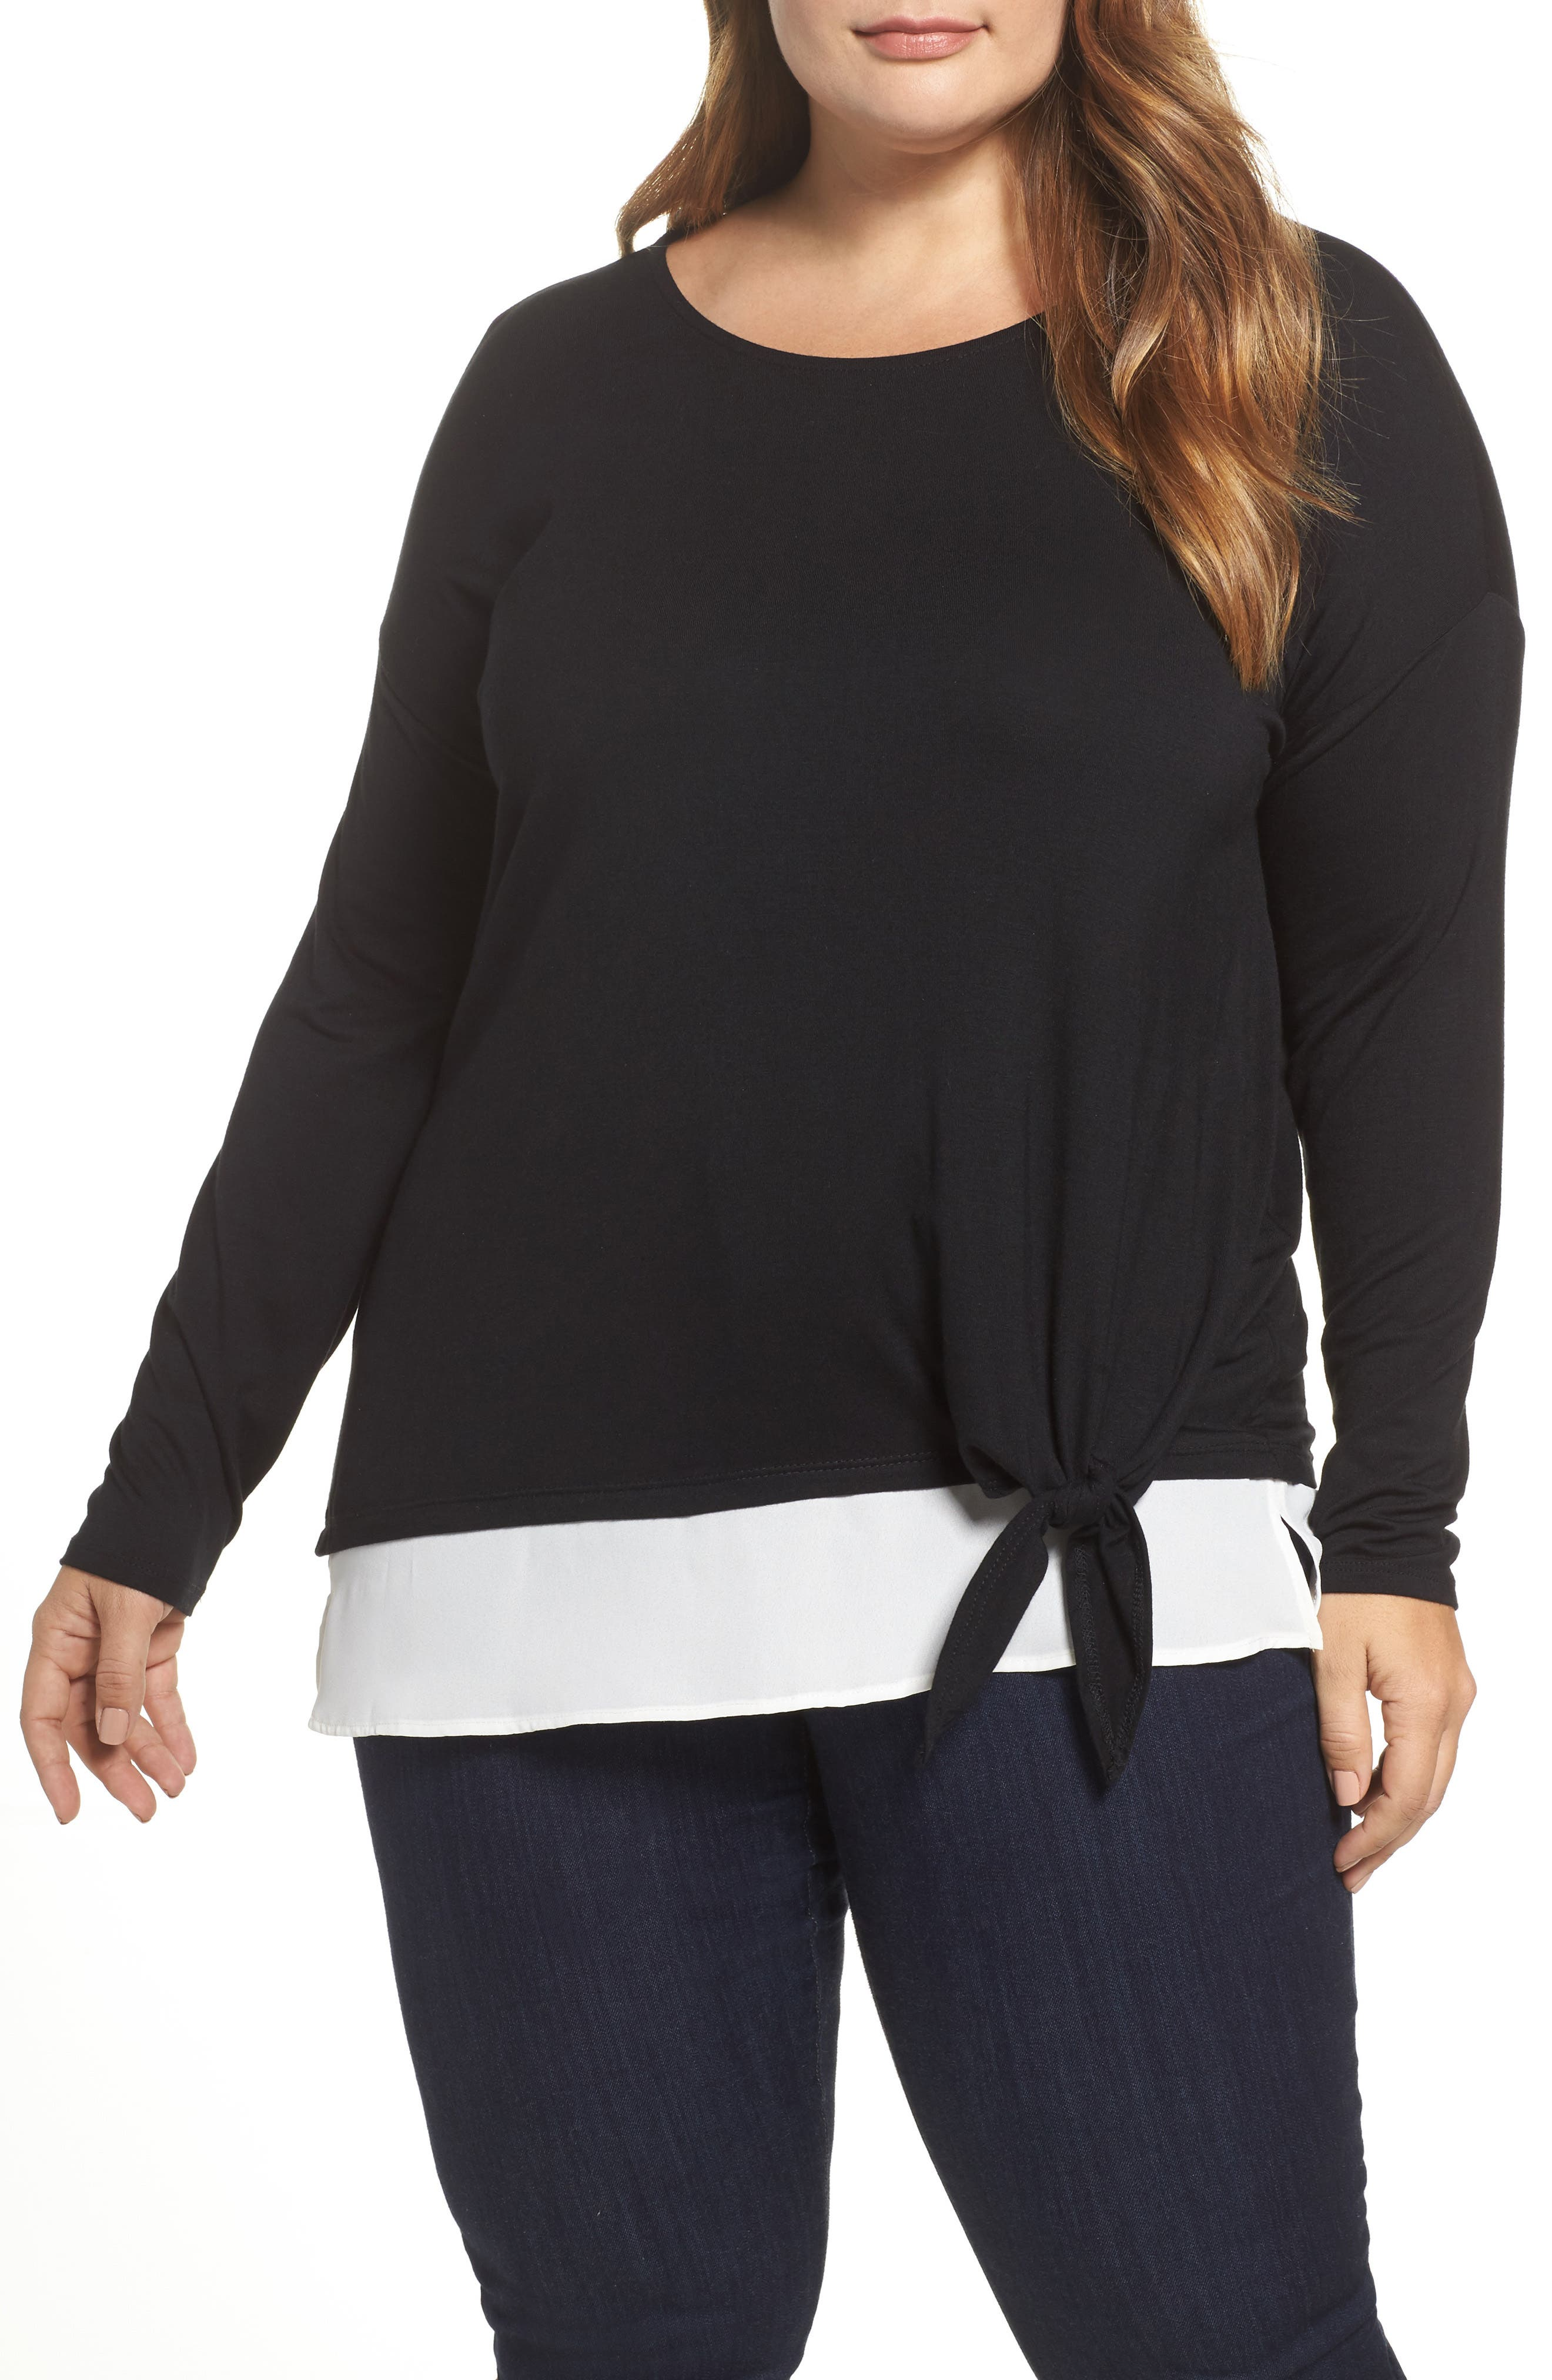 Alternate Image 1 Selected - Sejour Layered Look Tie Hem Top (Plus Size)